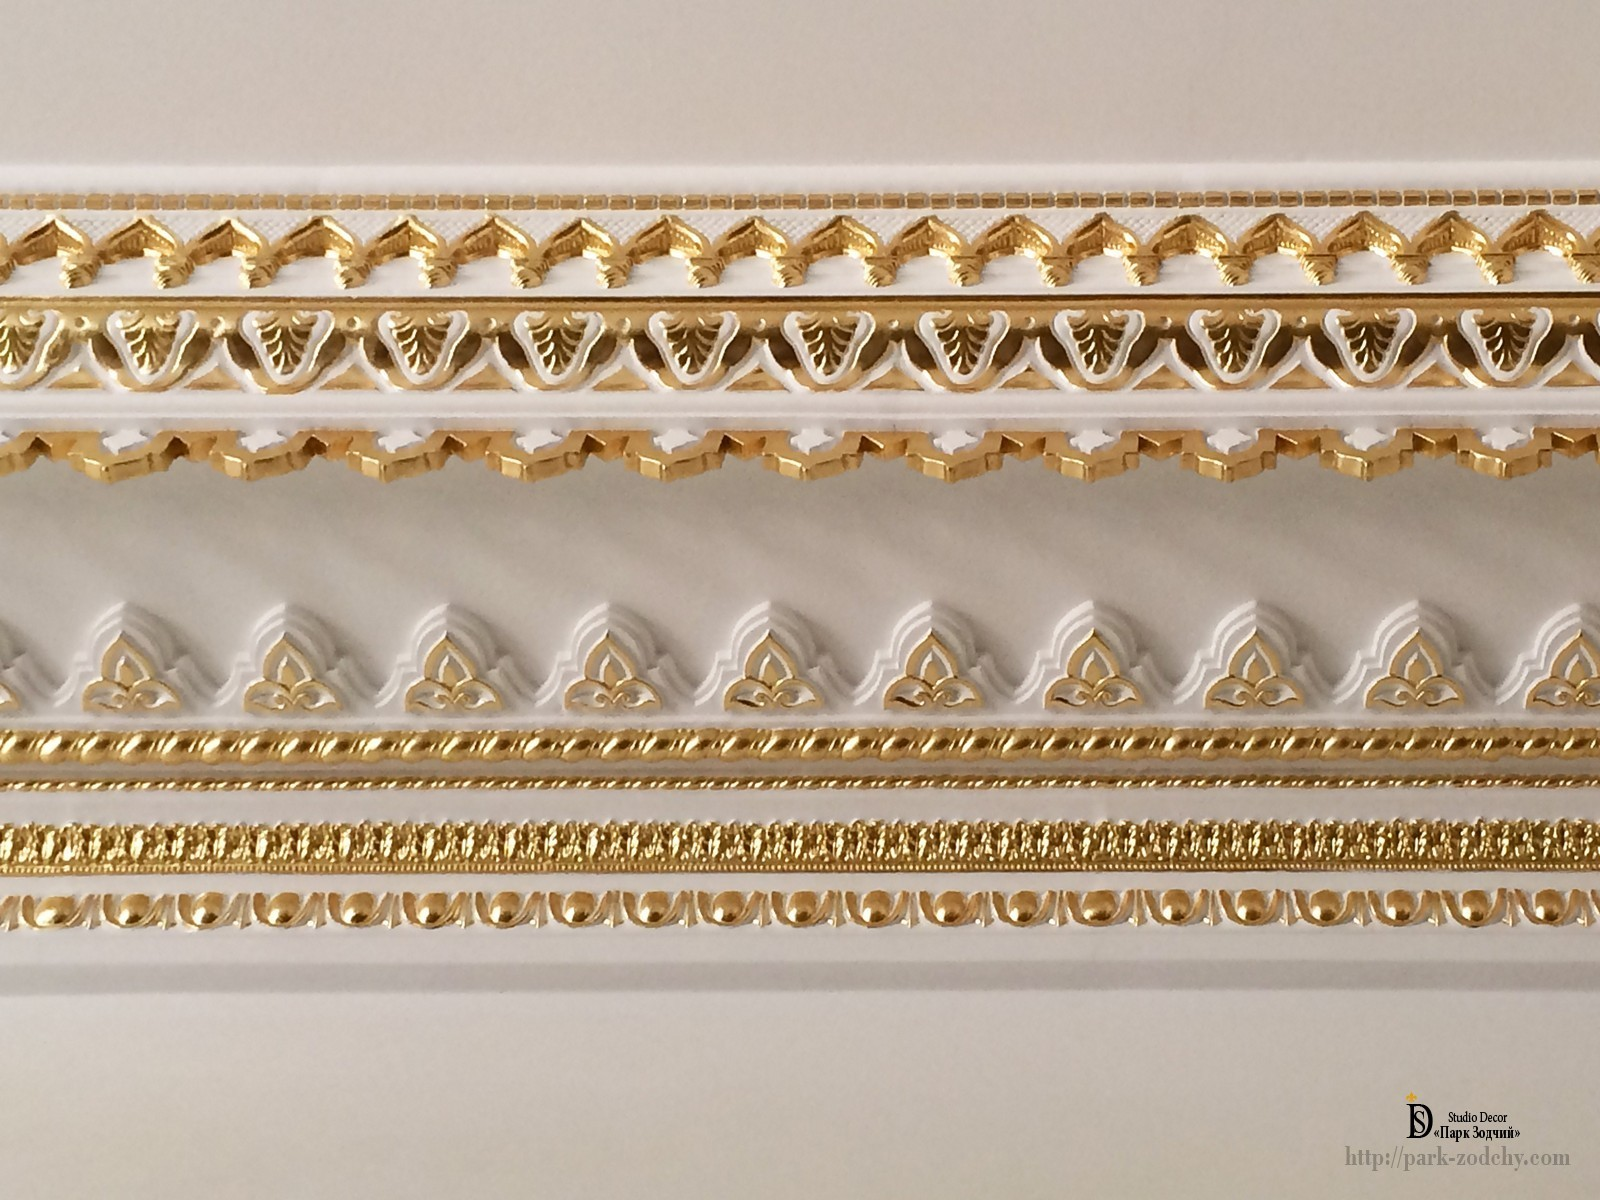 A plaster frieze with gilt and gold leaf